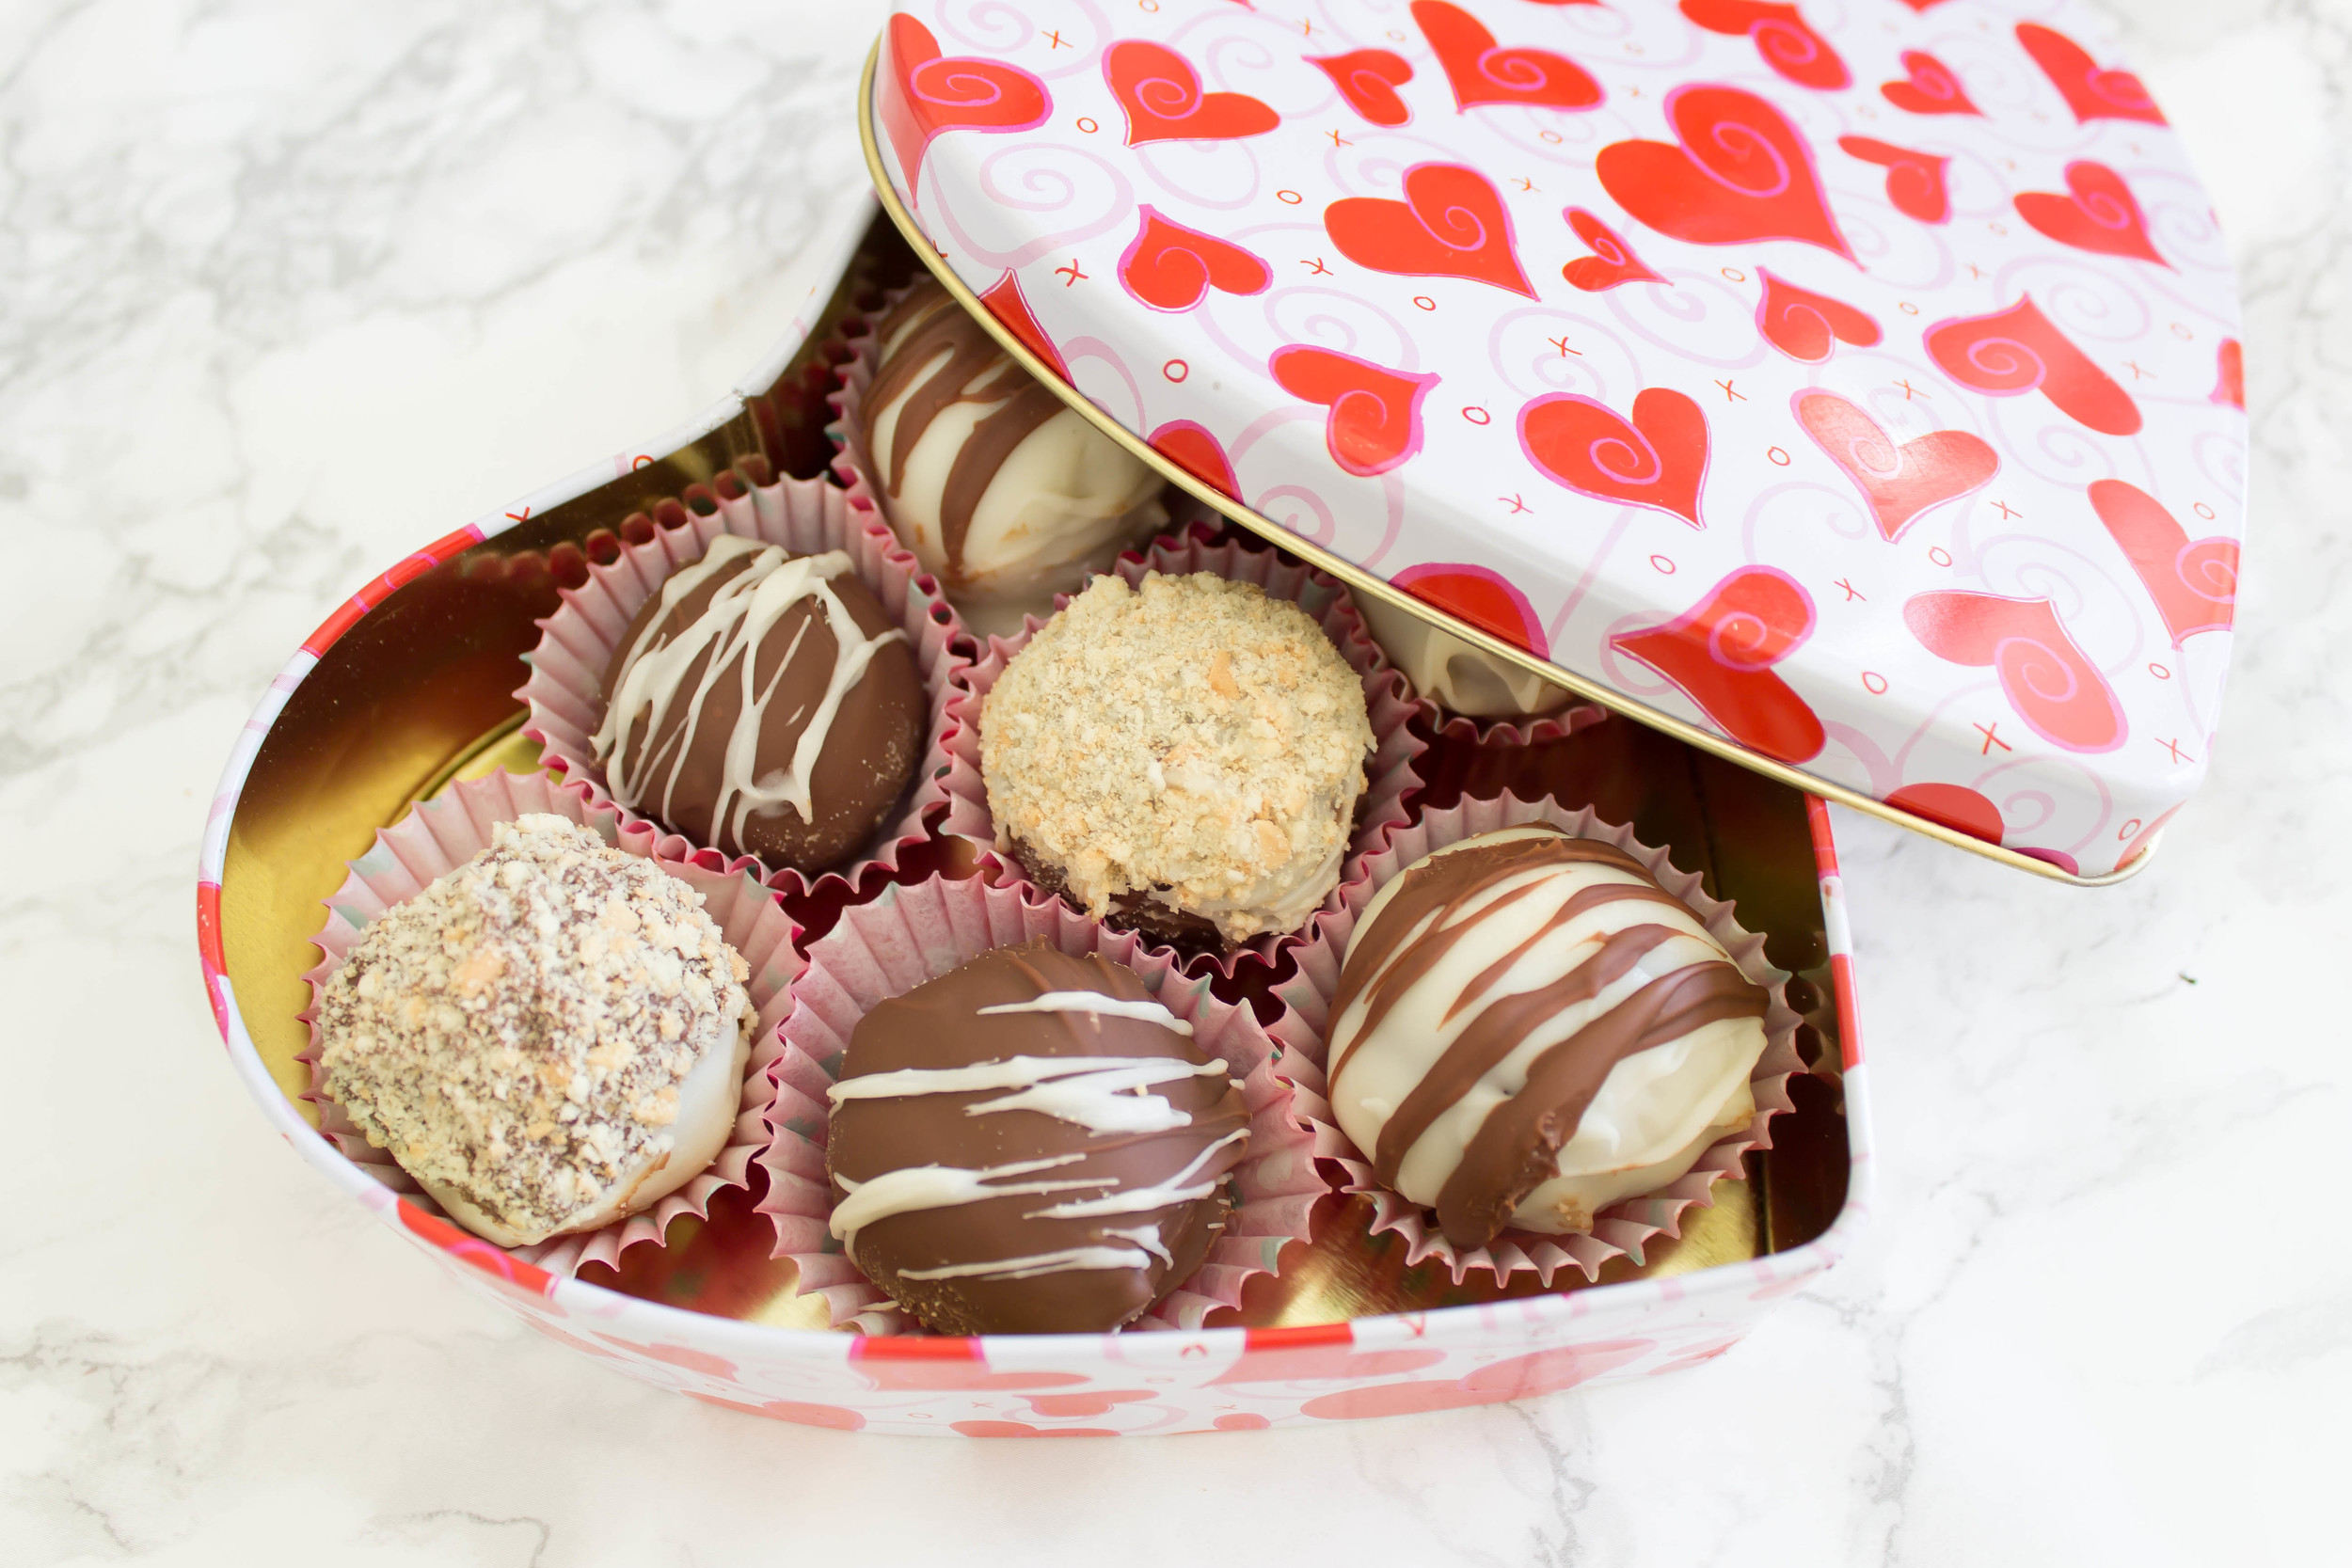 MonicaxGuan DIY 2 Ingredient Chocolate Truffles-5.jpg